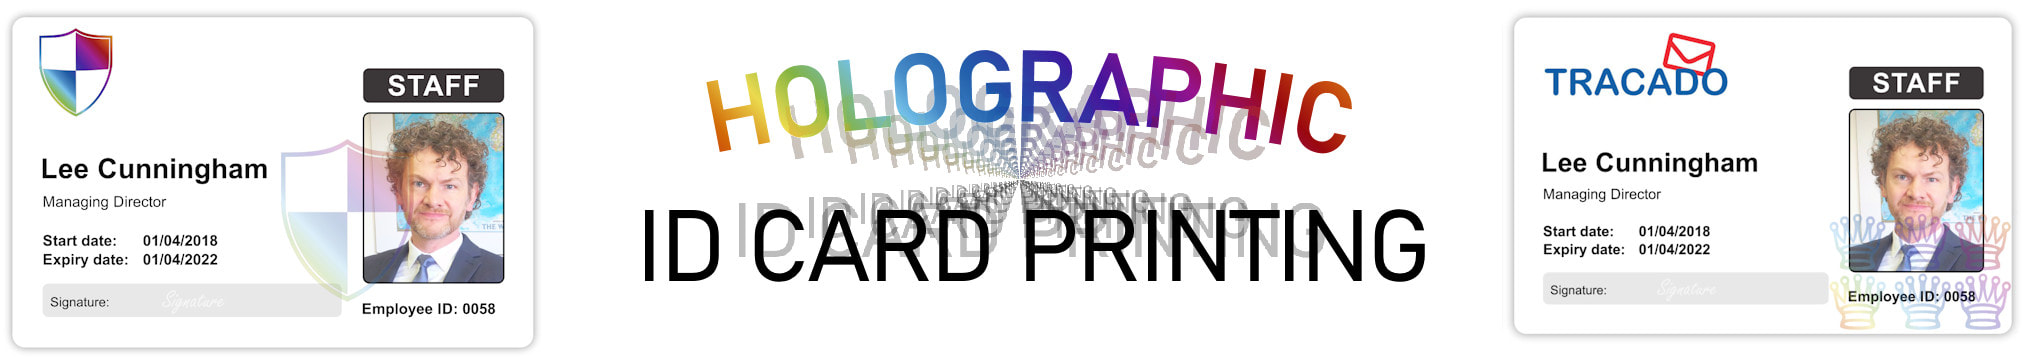 Merseyside holographic ID card print service. Employee Identity cards with hologram or holograph security mark.